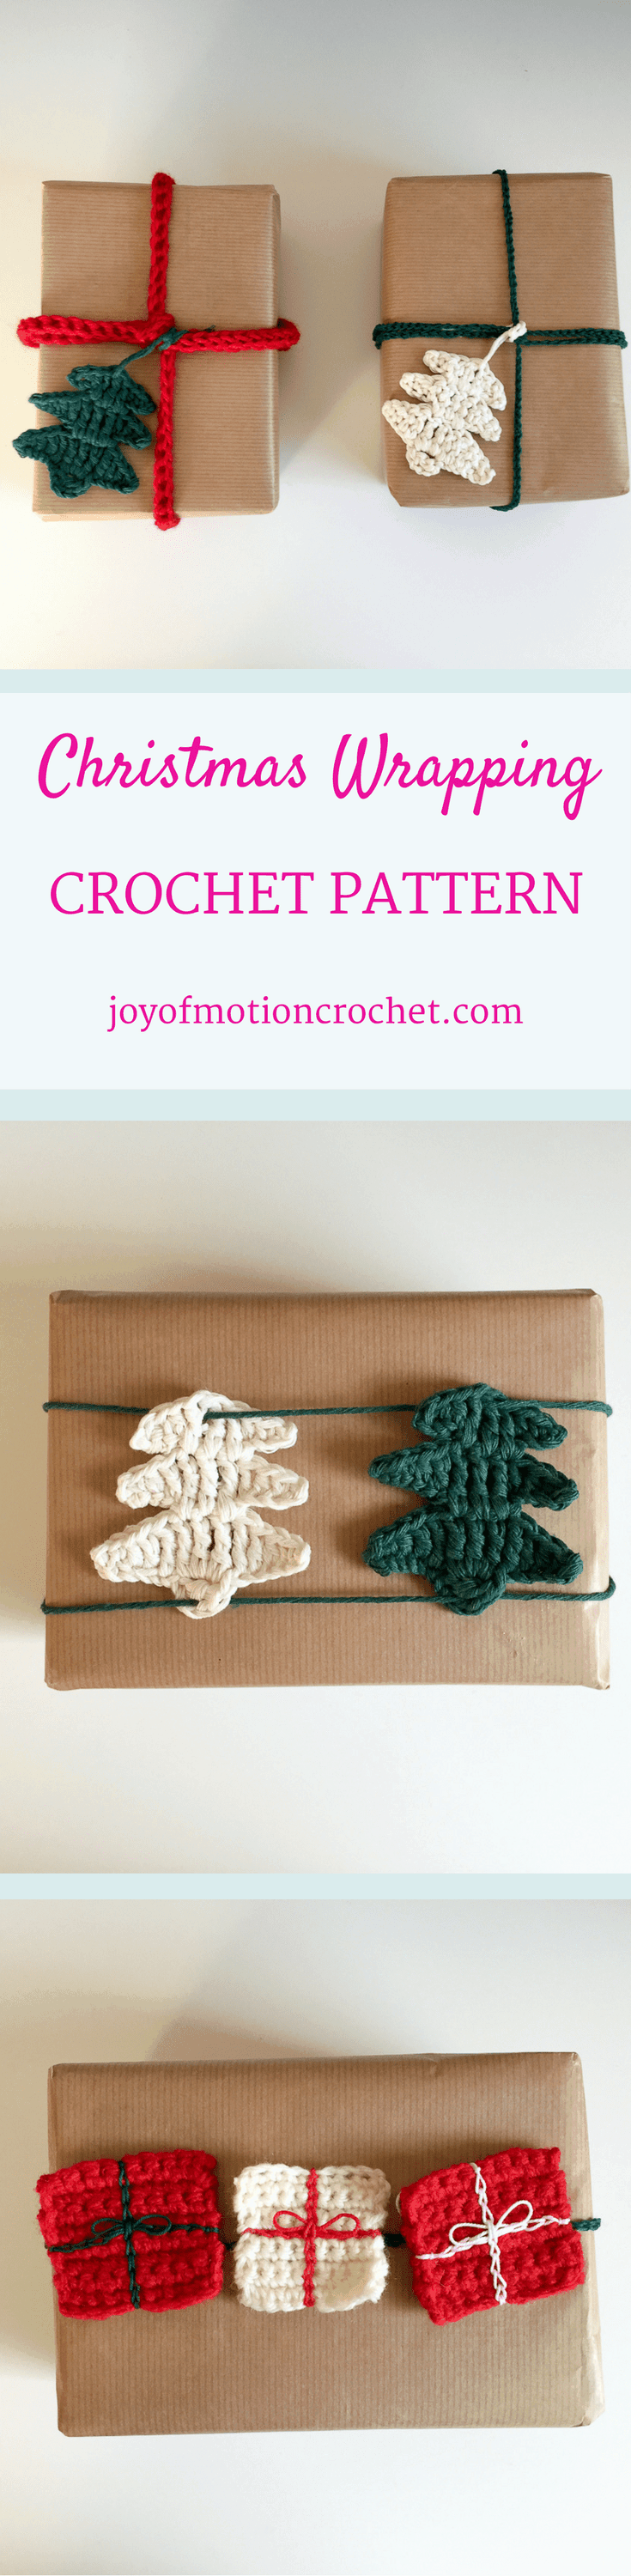 Christmas Wrapping crochet pattern. Christmas crochet. Christmas crochet idea. Crochet your Christmas wrapping. Christmas Threes. Christmas Star. Christmas garland. Christmas packages. Pin it now & keep it forever. Click to learn more.